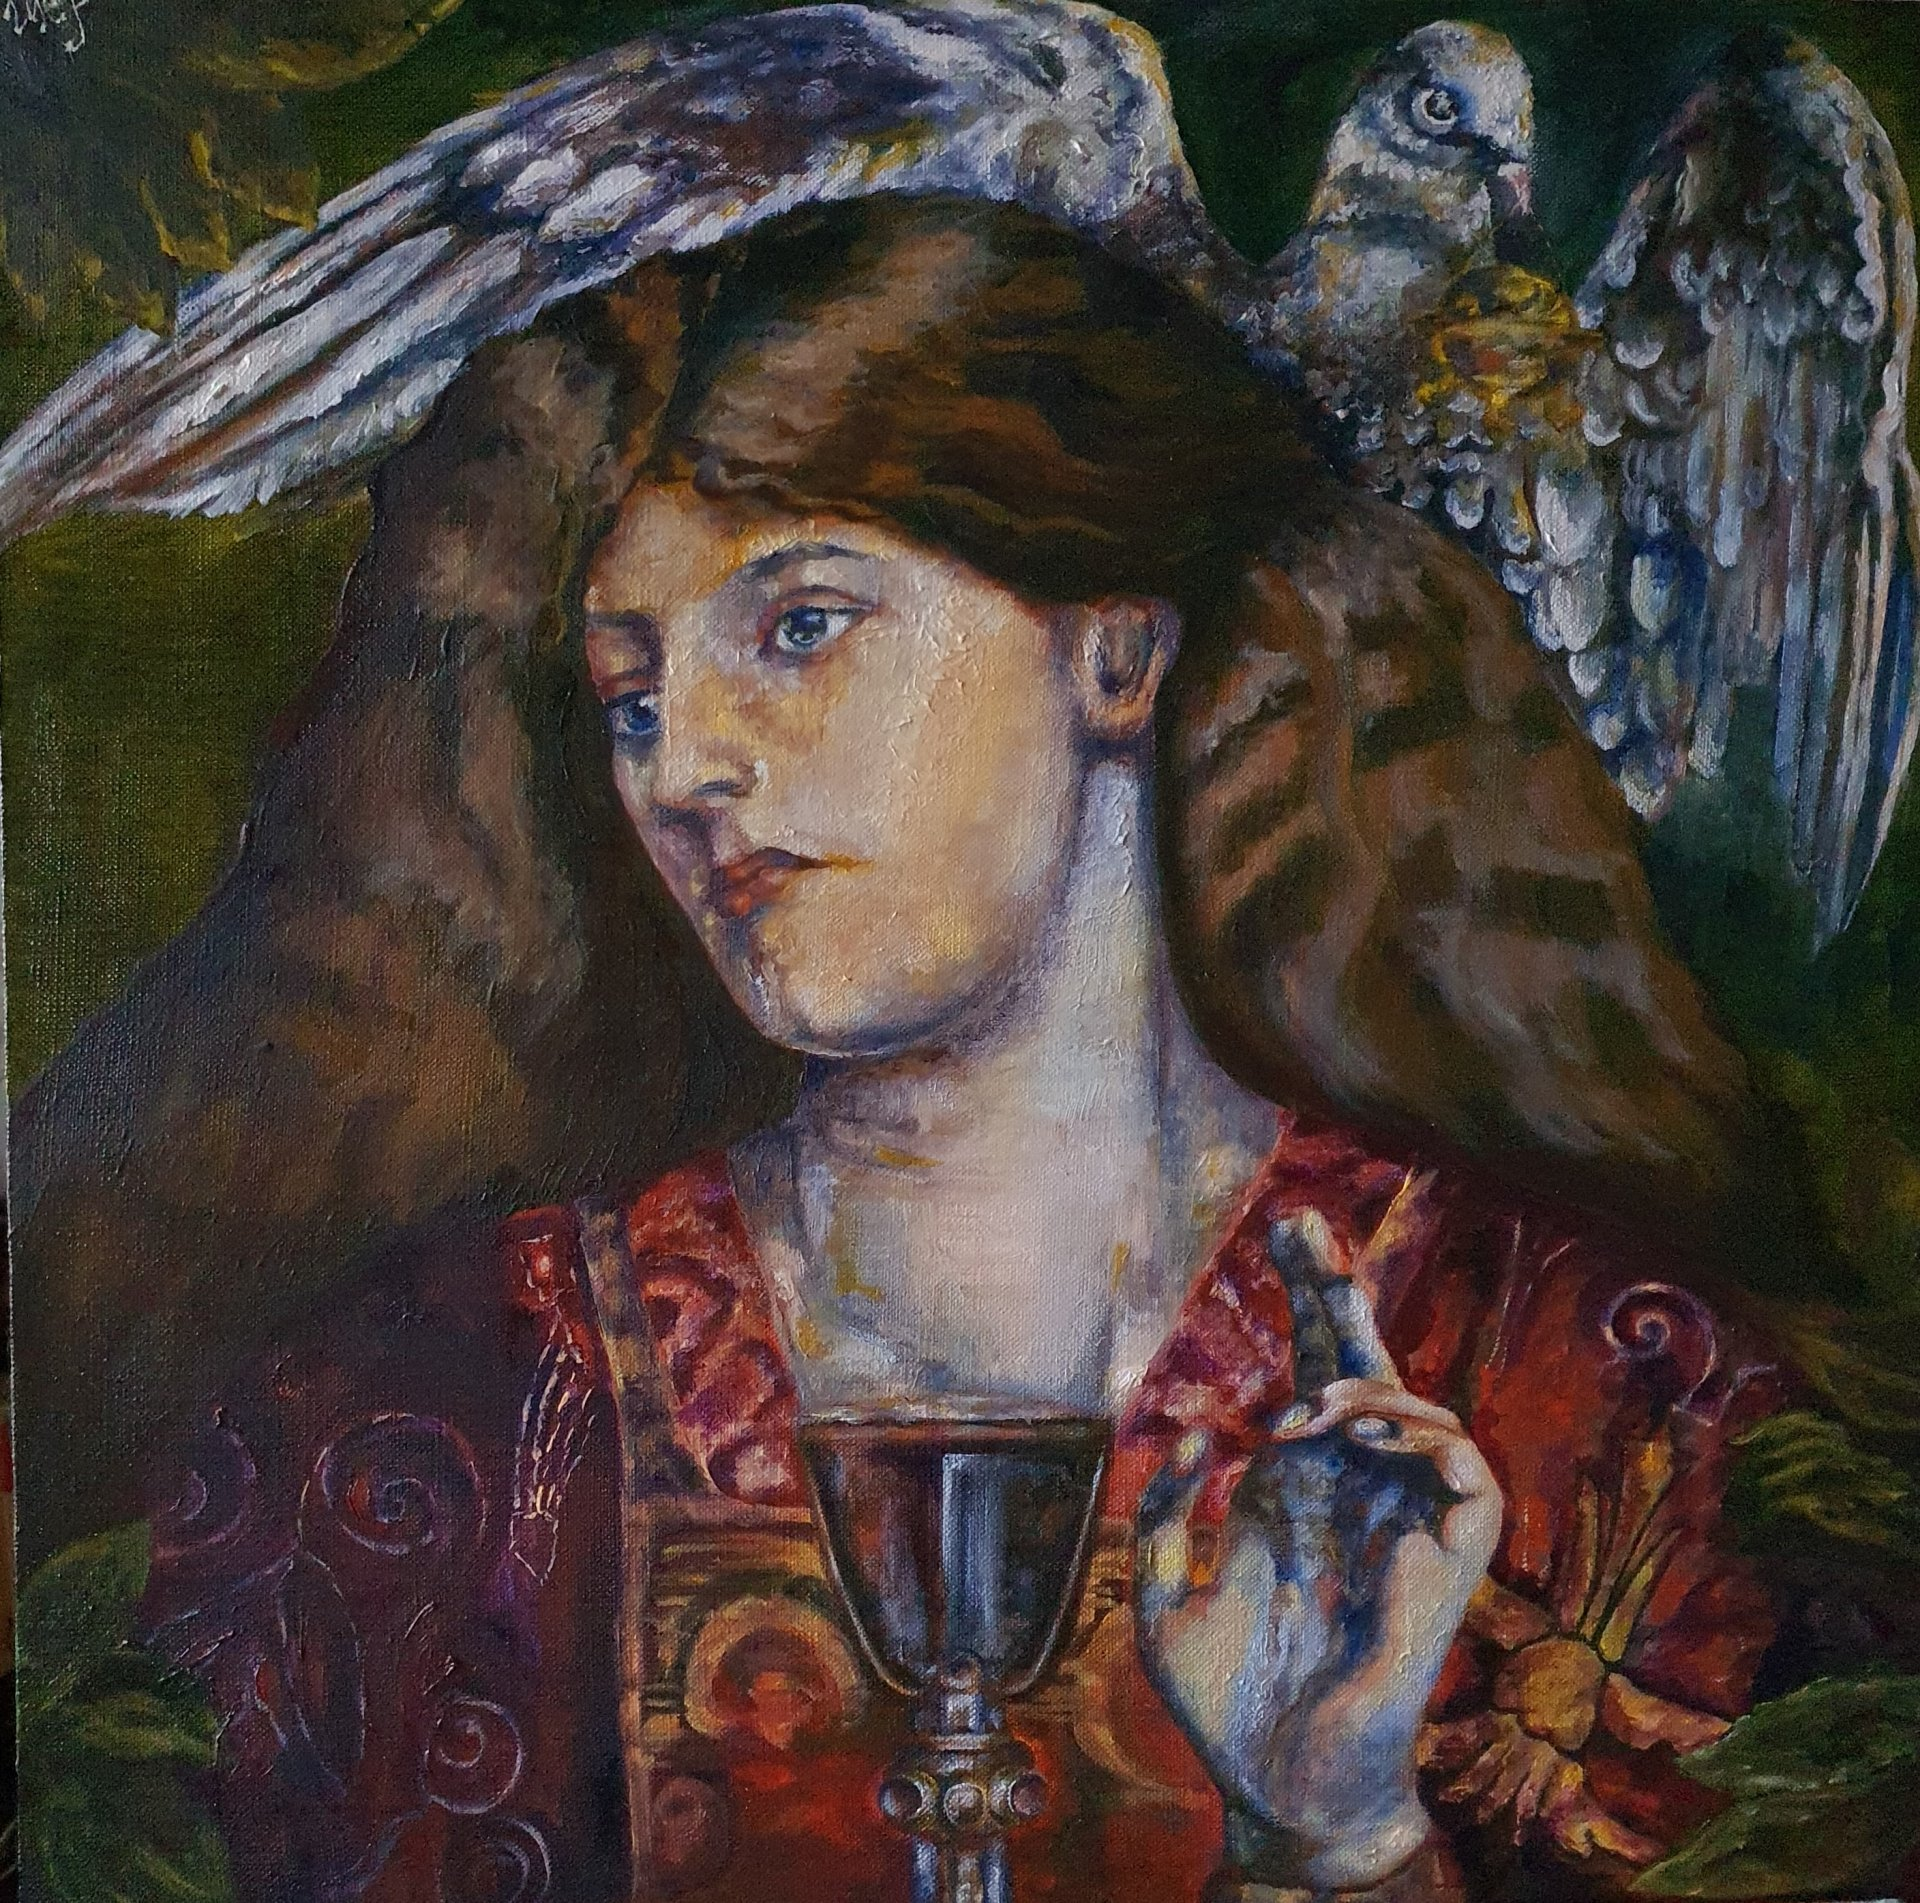 Virgin of the Holy Grail (fragment of Dante Gabriel Rossetti's painting, copy)